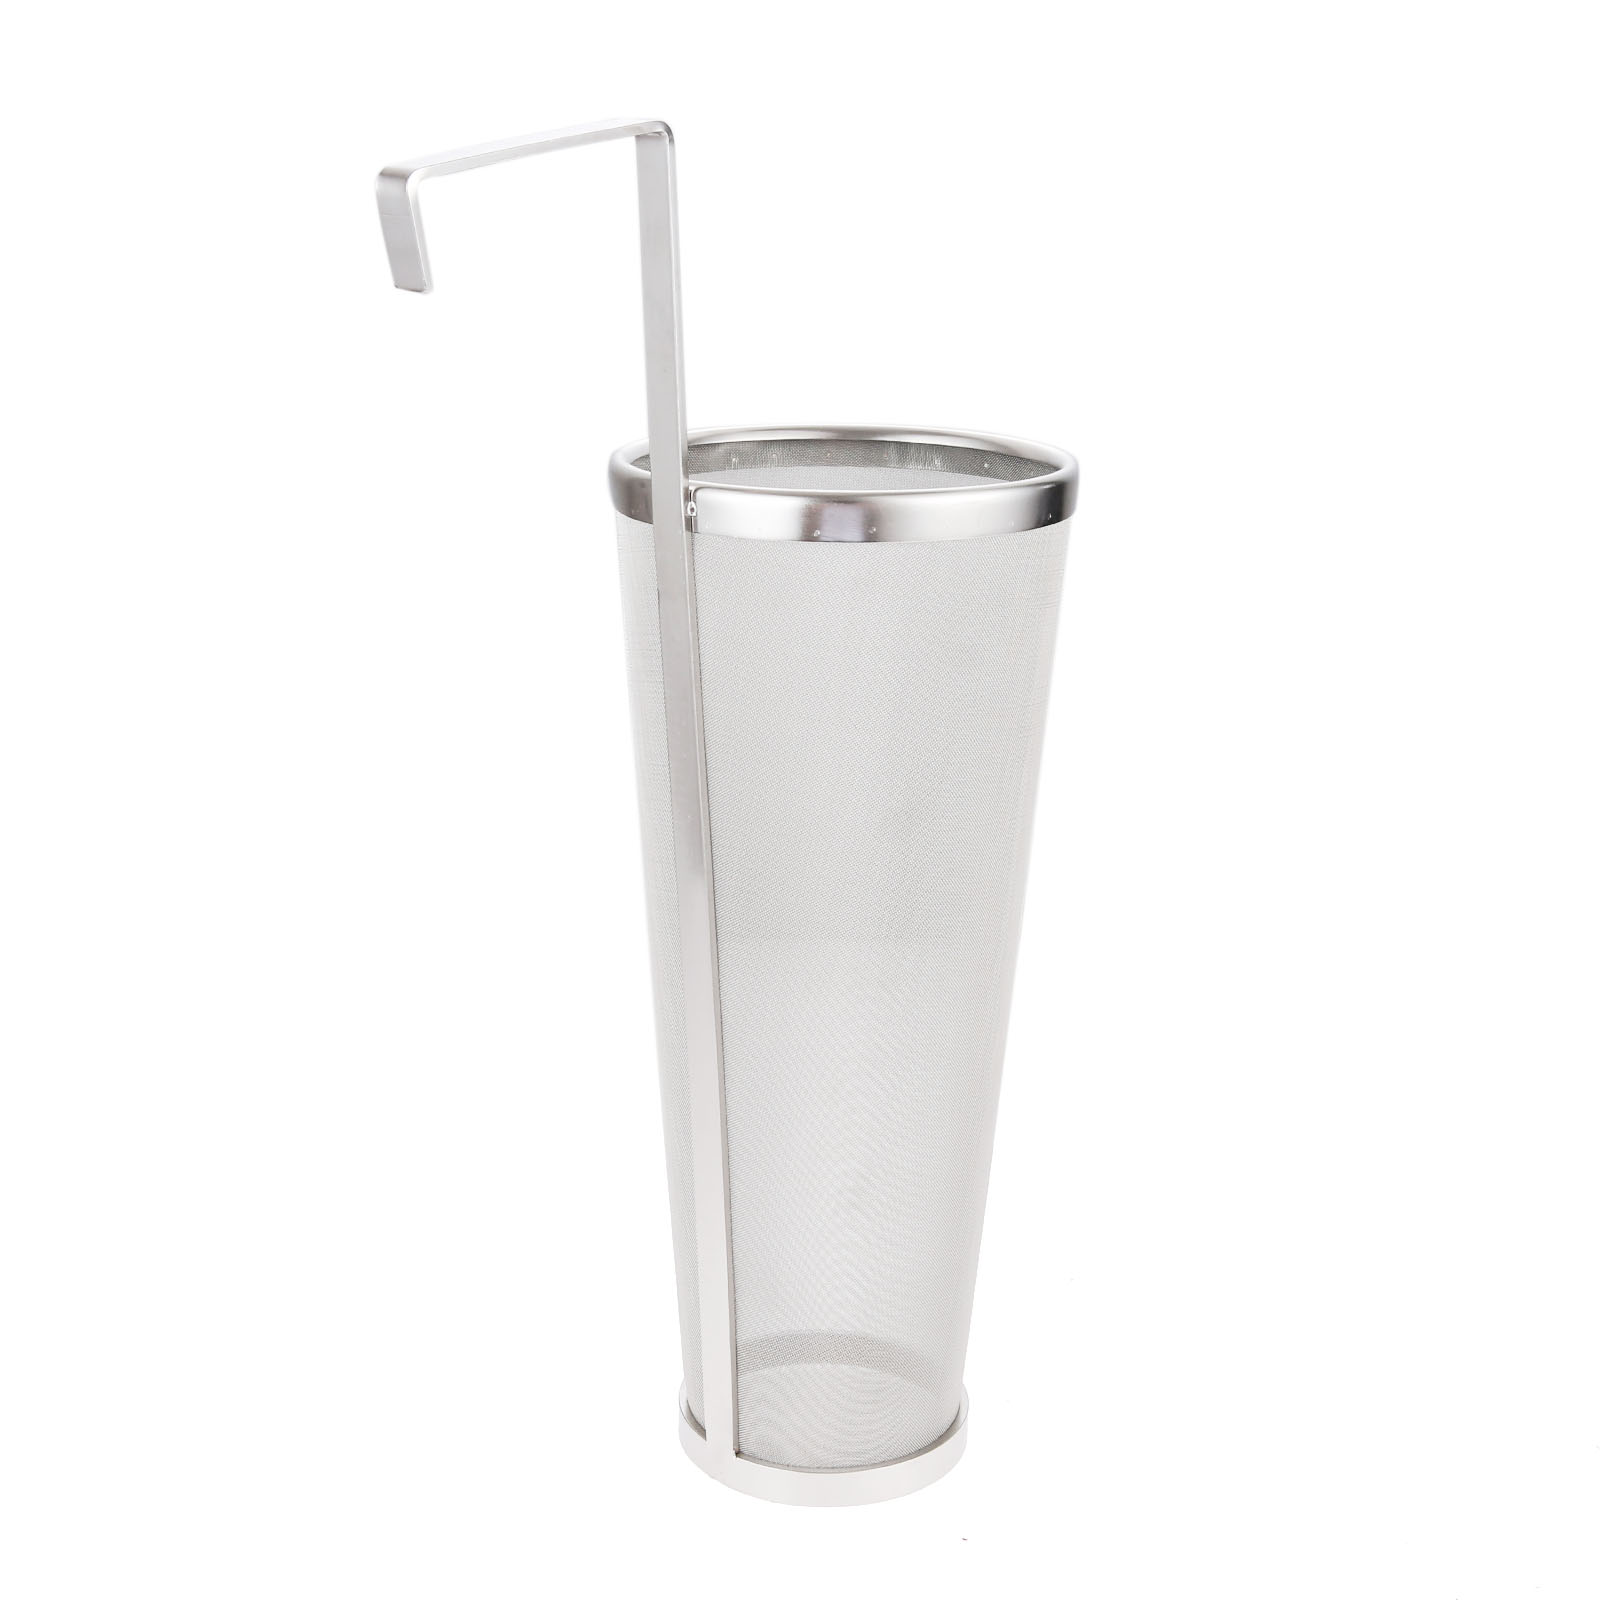 Stainless Steel Homebrew Hop Spider Beer Brew Hop Filter 300 Micron Mesh Strainer With Hook For Hanging 35x10cm